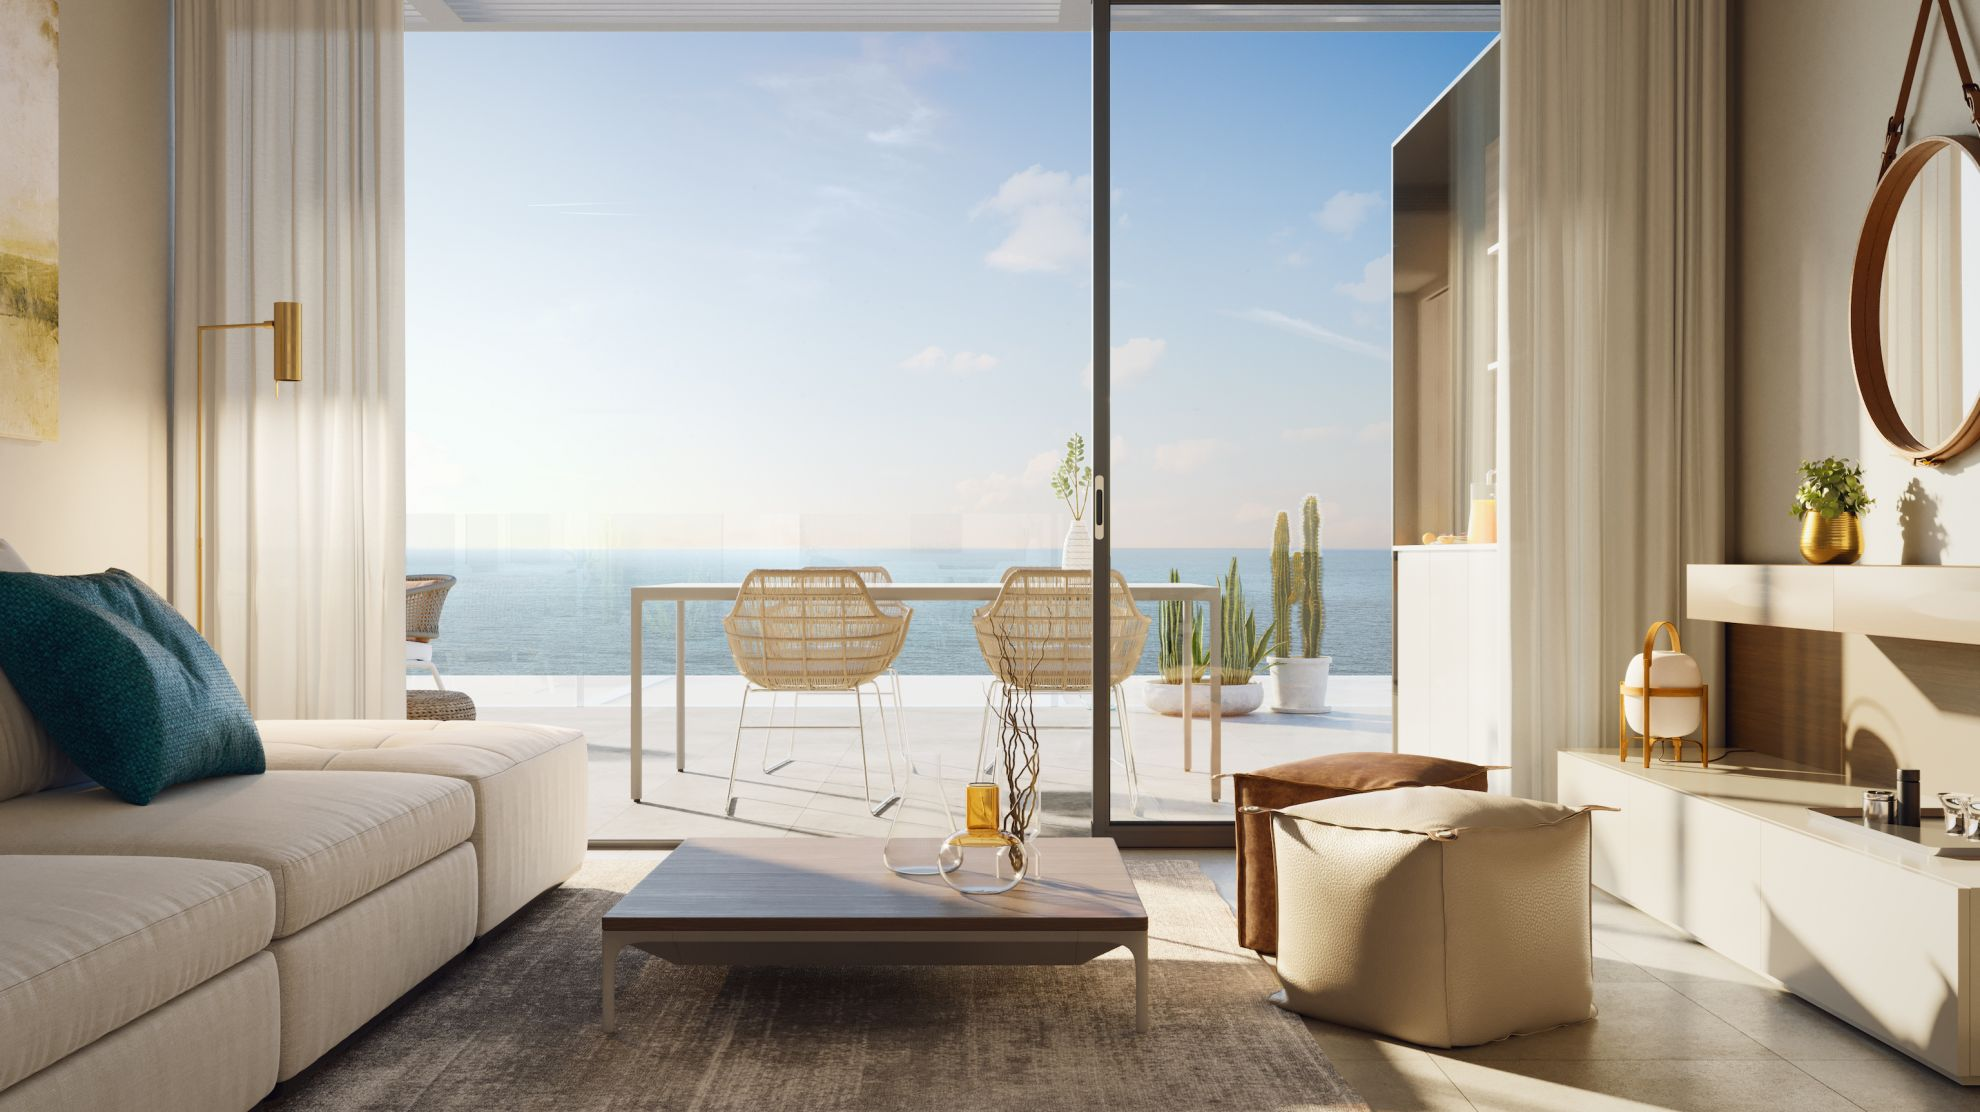 2 and 3 bedroom penthouse-style apartments with big terraces overlookg the sea. House 7 11